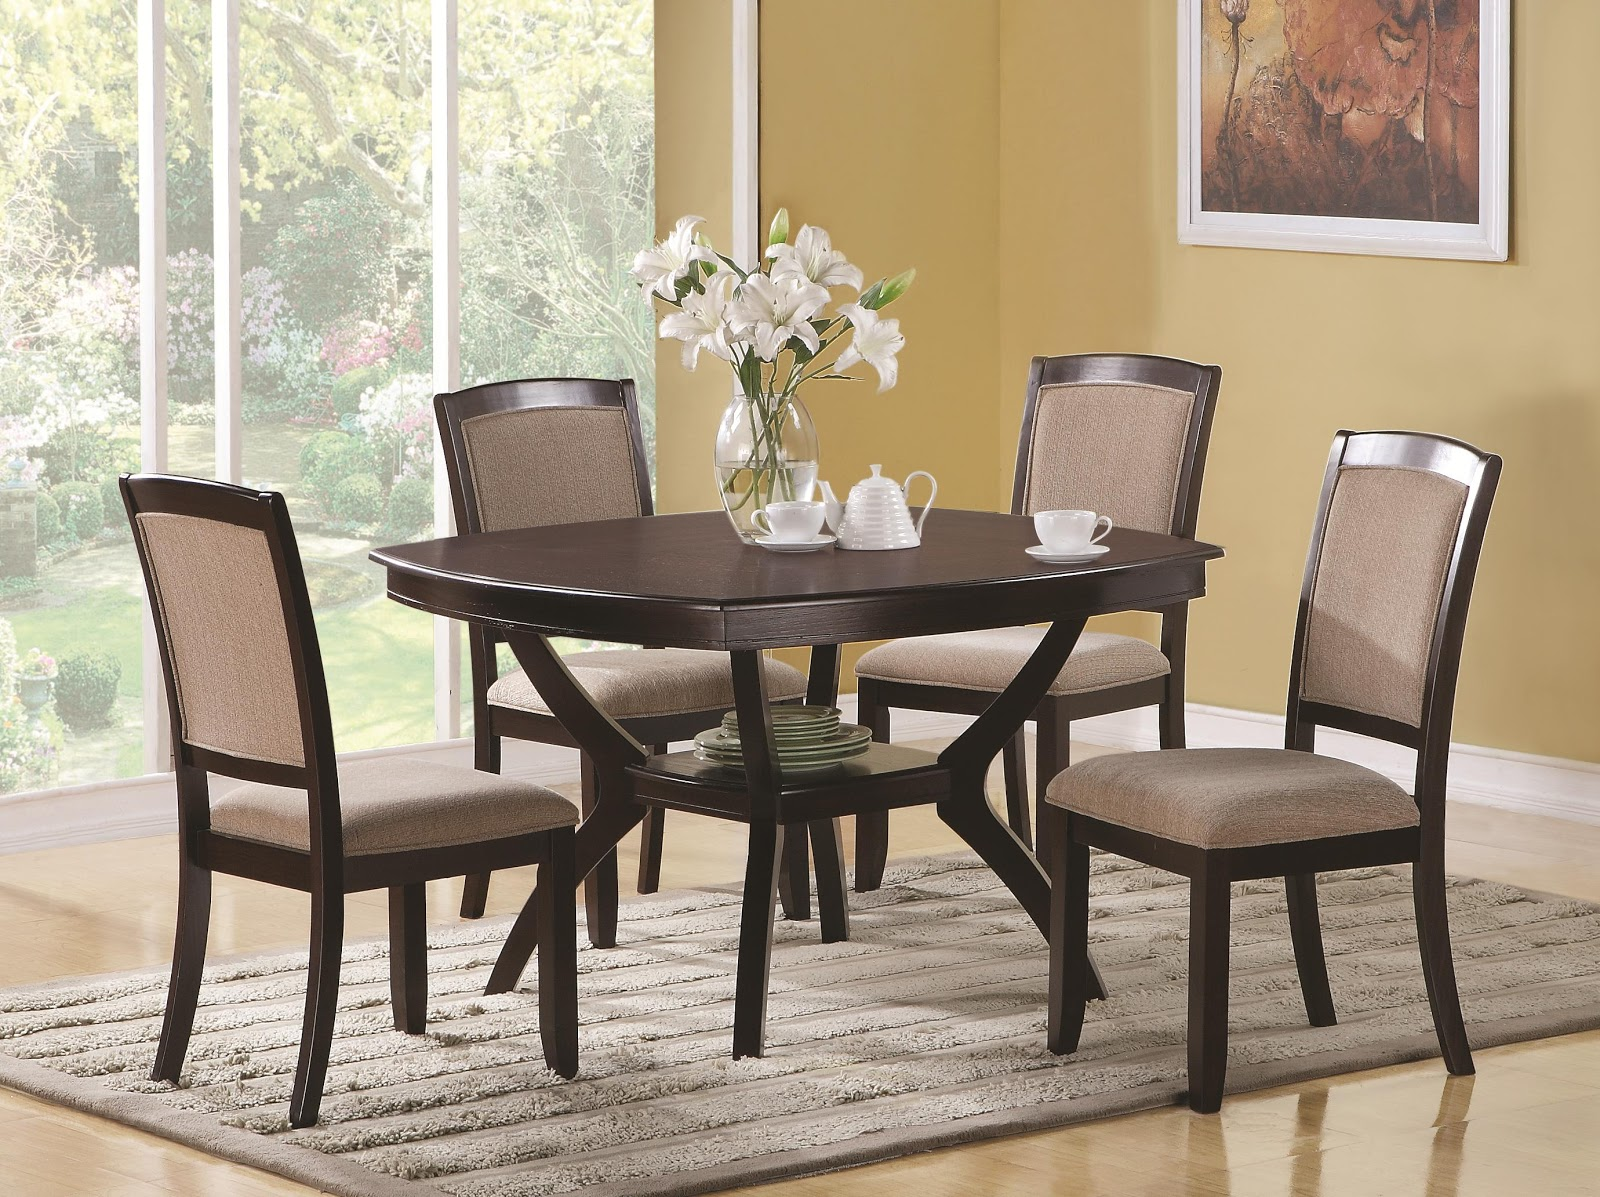 Round dining room sets dining room unique dinette for Dinette furniture